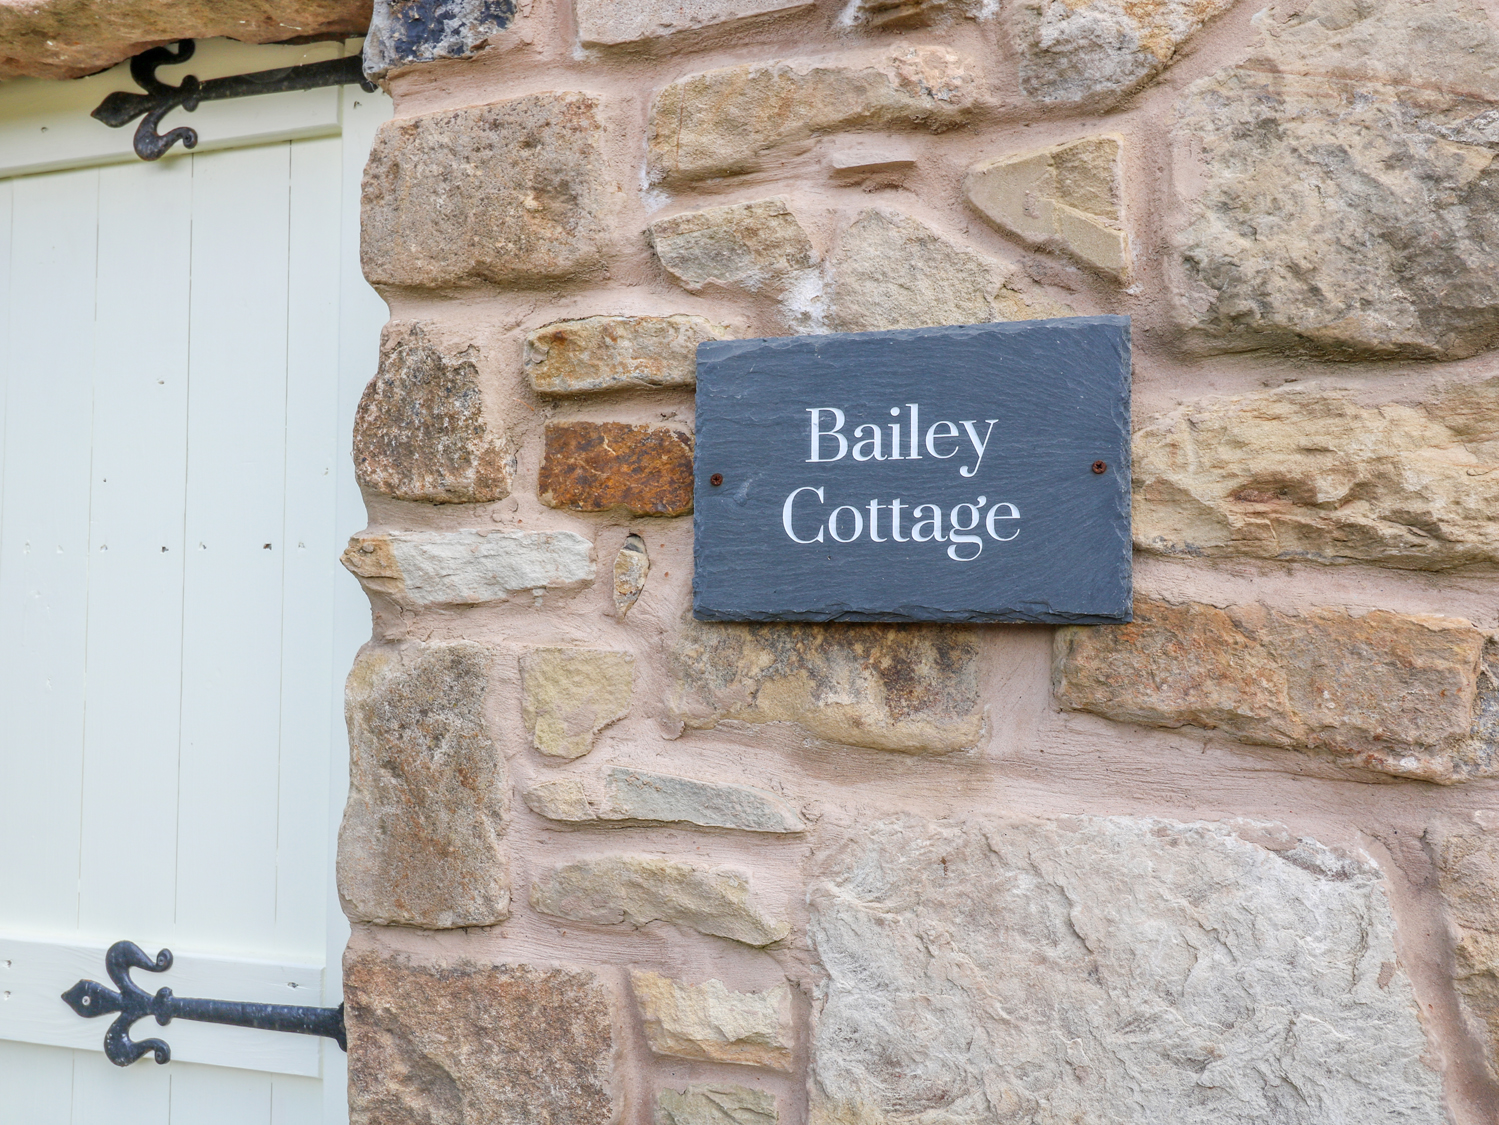 Bailey Cottage